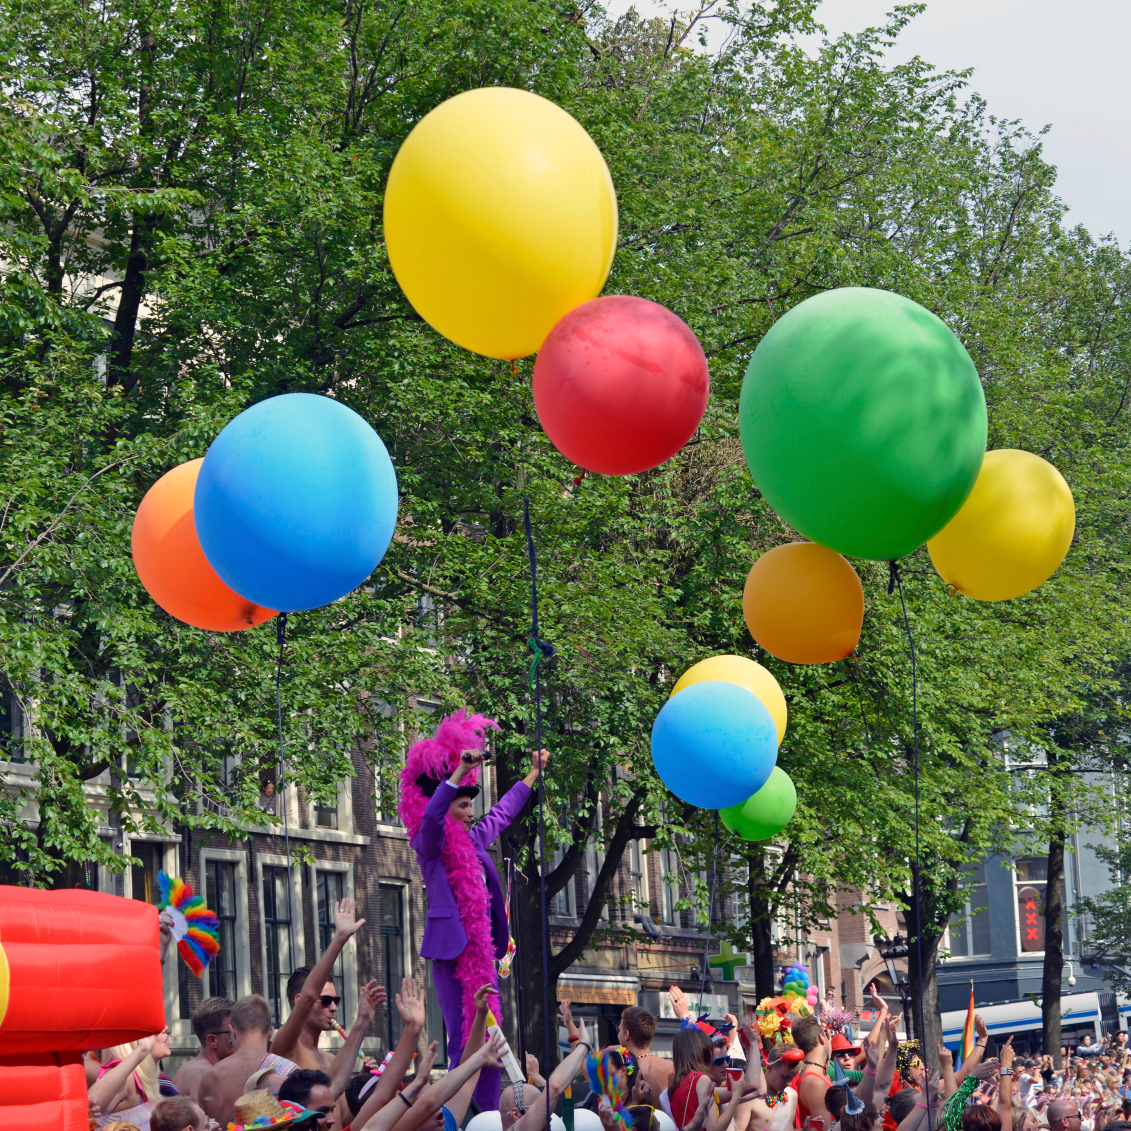 Crowds and balloons at a pride event